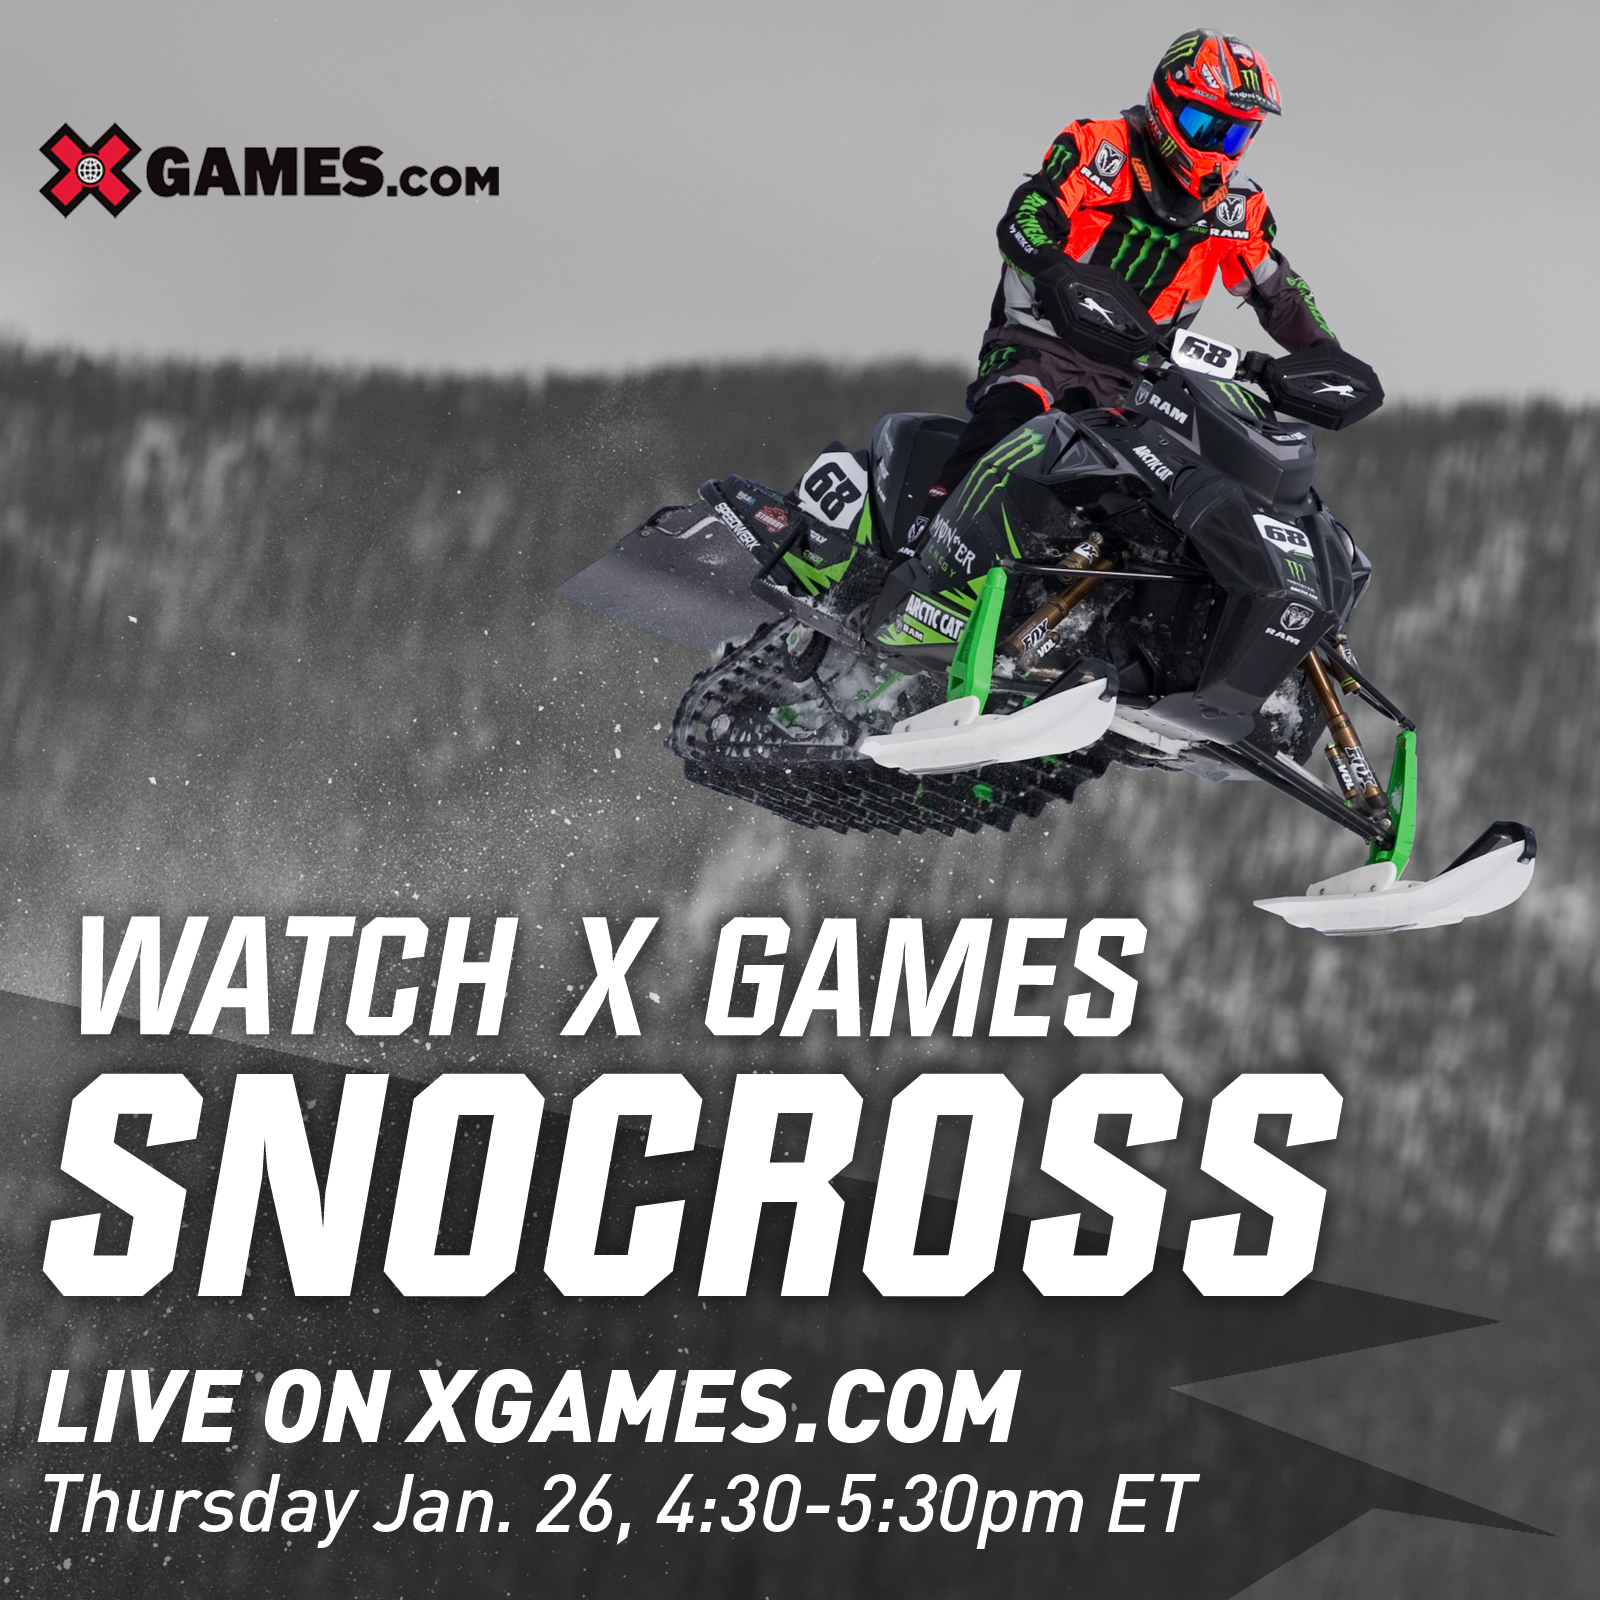 Watch X Games Snocross Live!